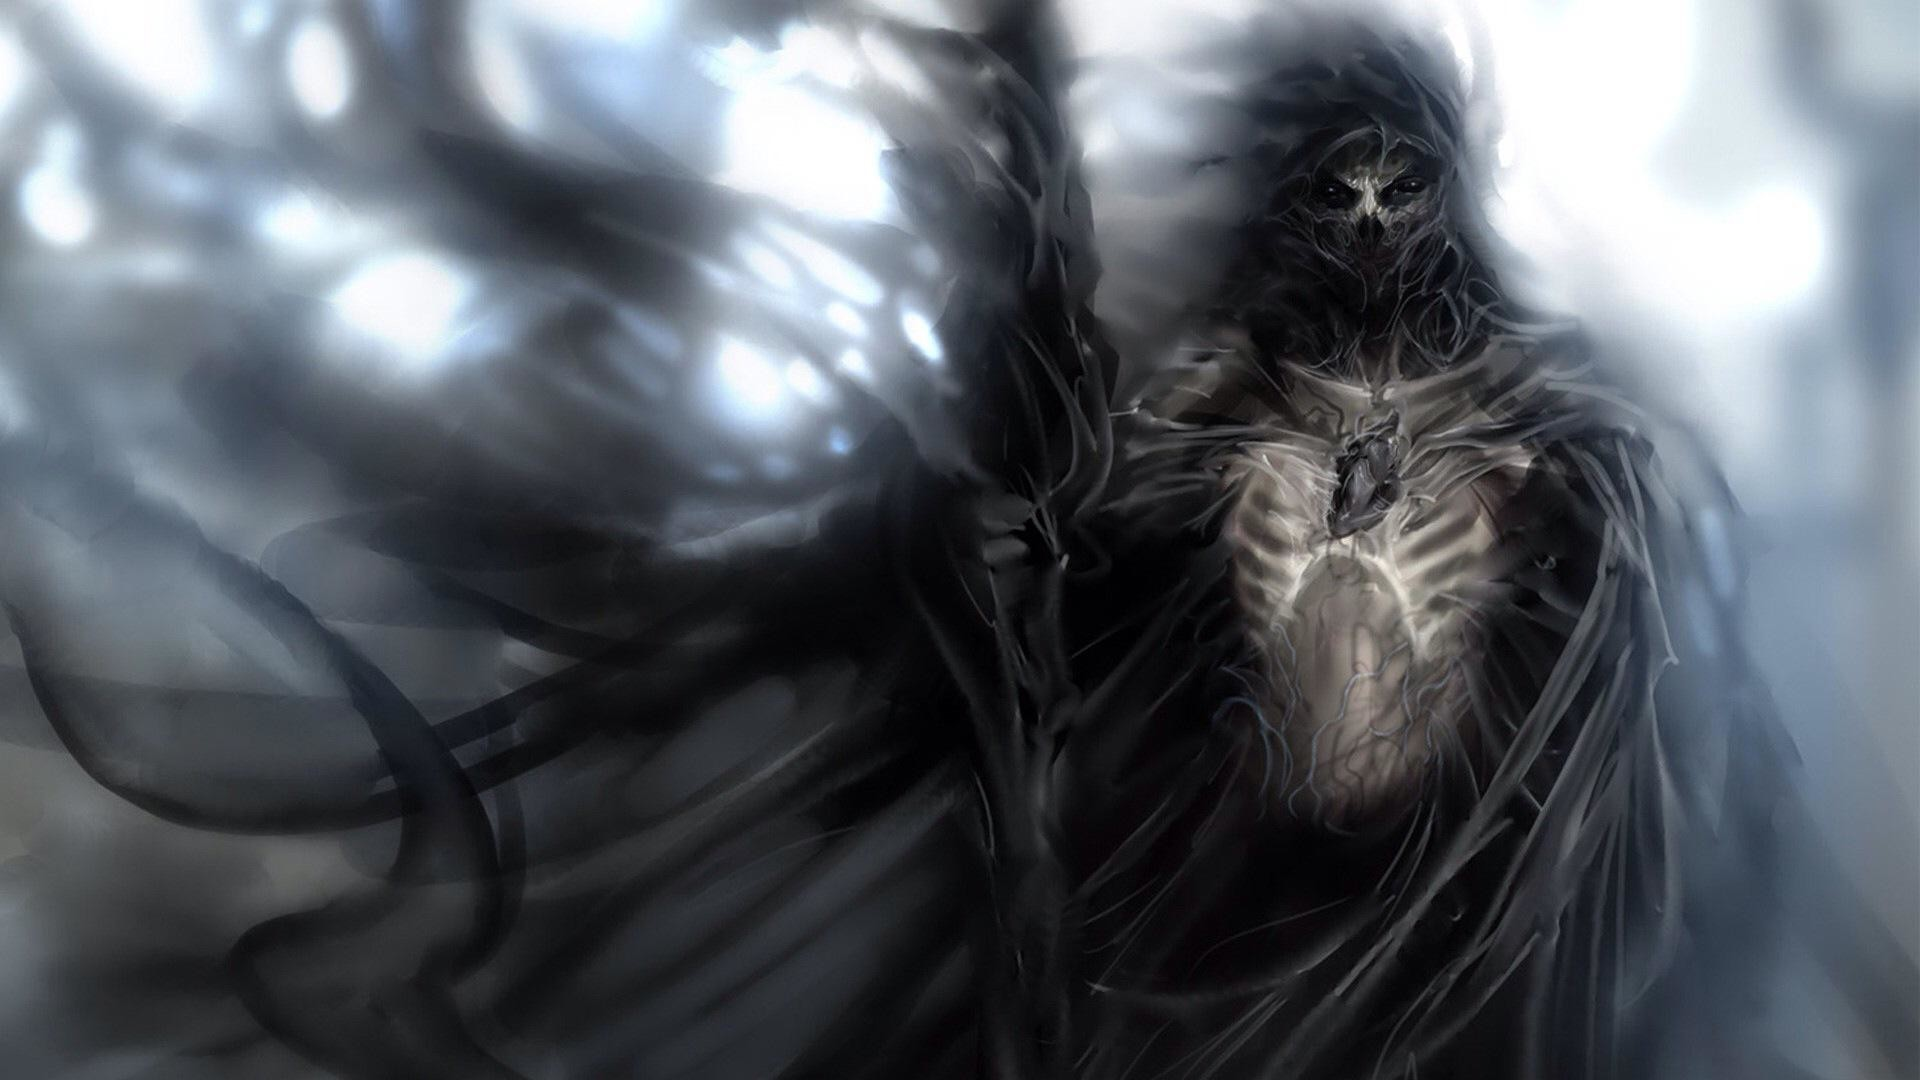 Res: 1920x1080, Cool-Grim-Reaper-Background-Wallpaper-HD-Resolution.jpg